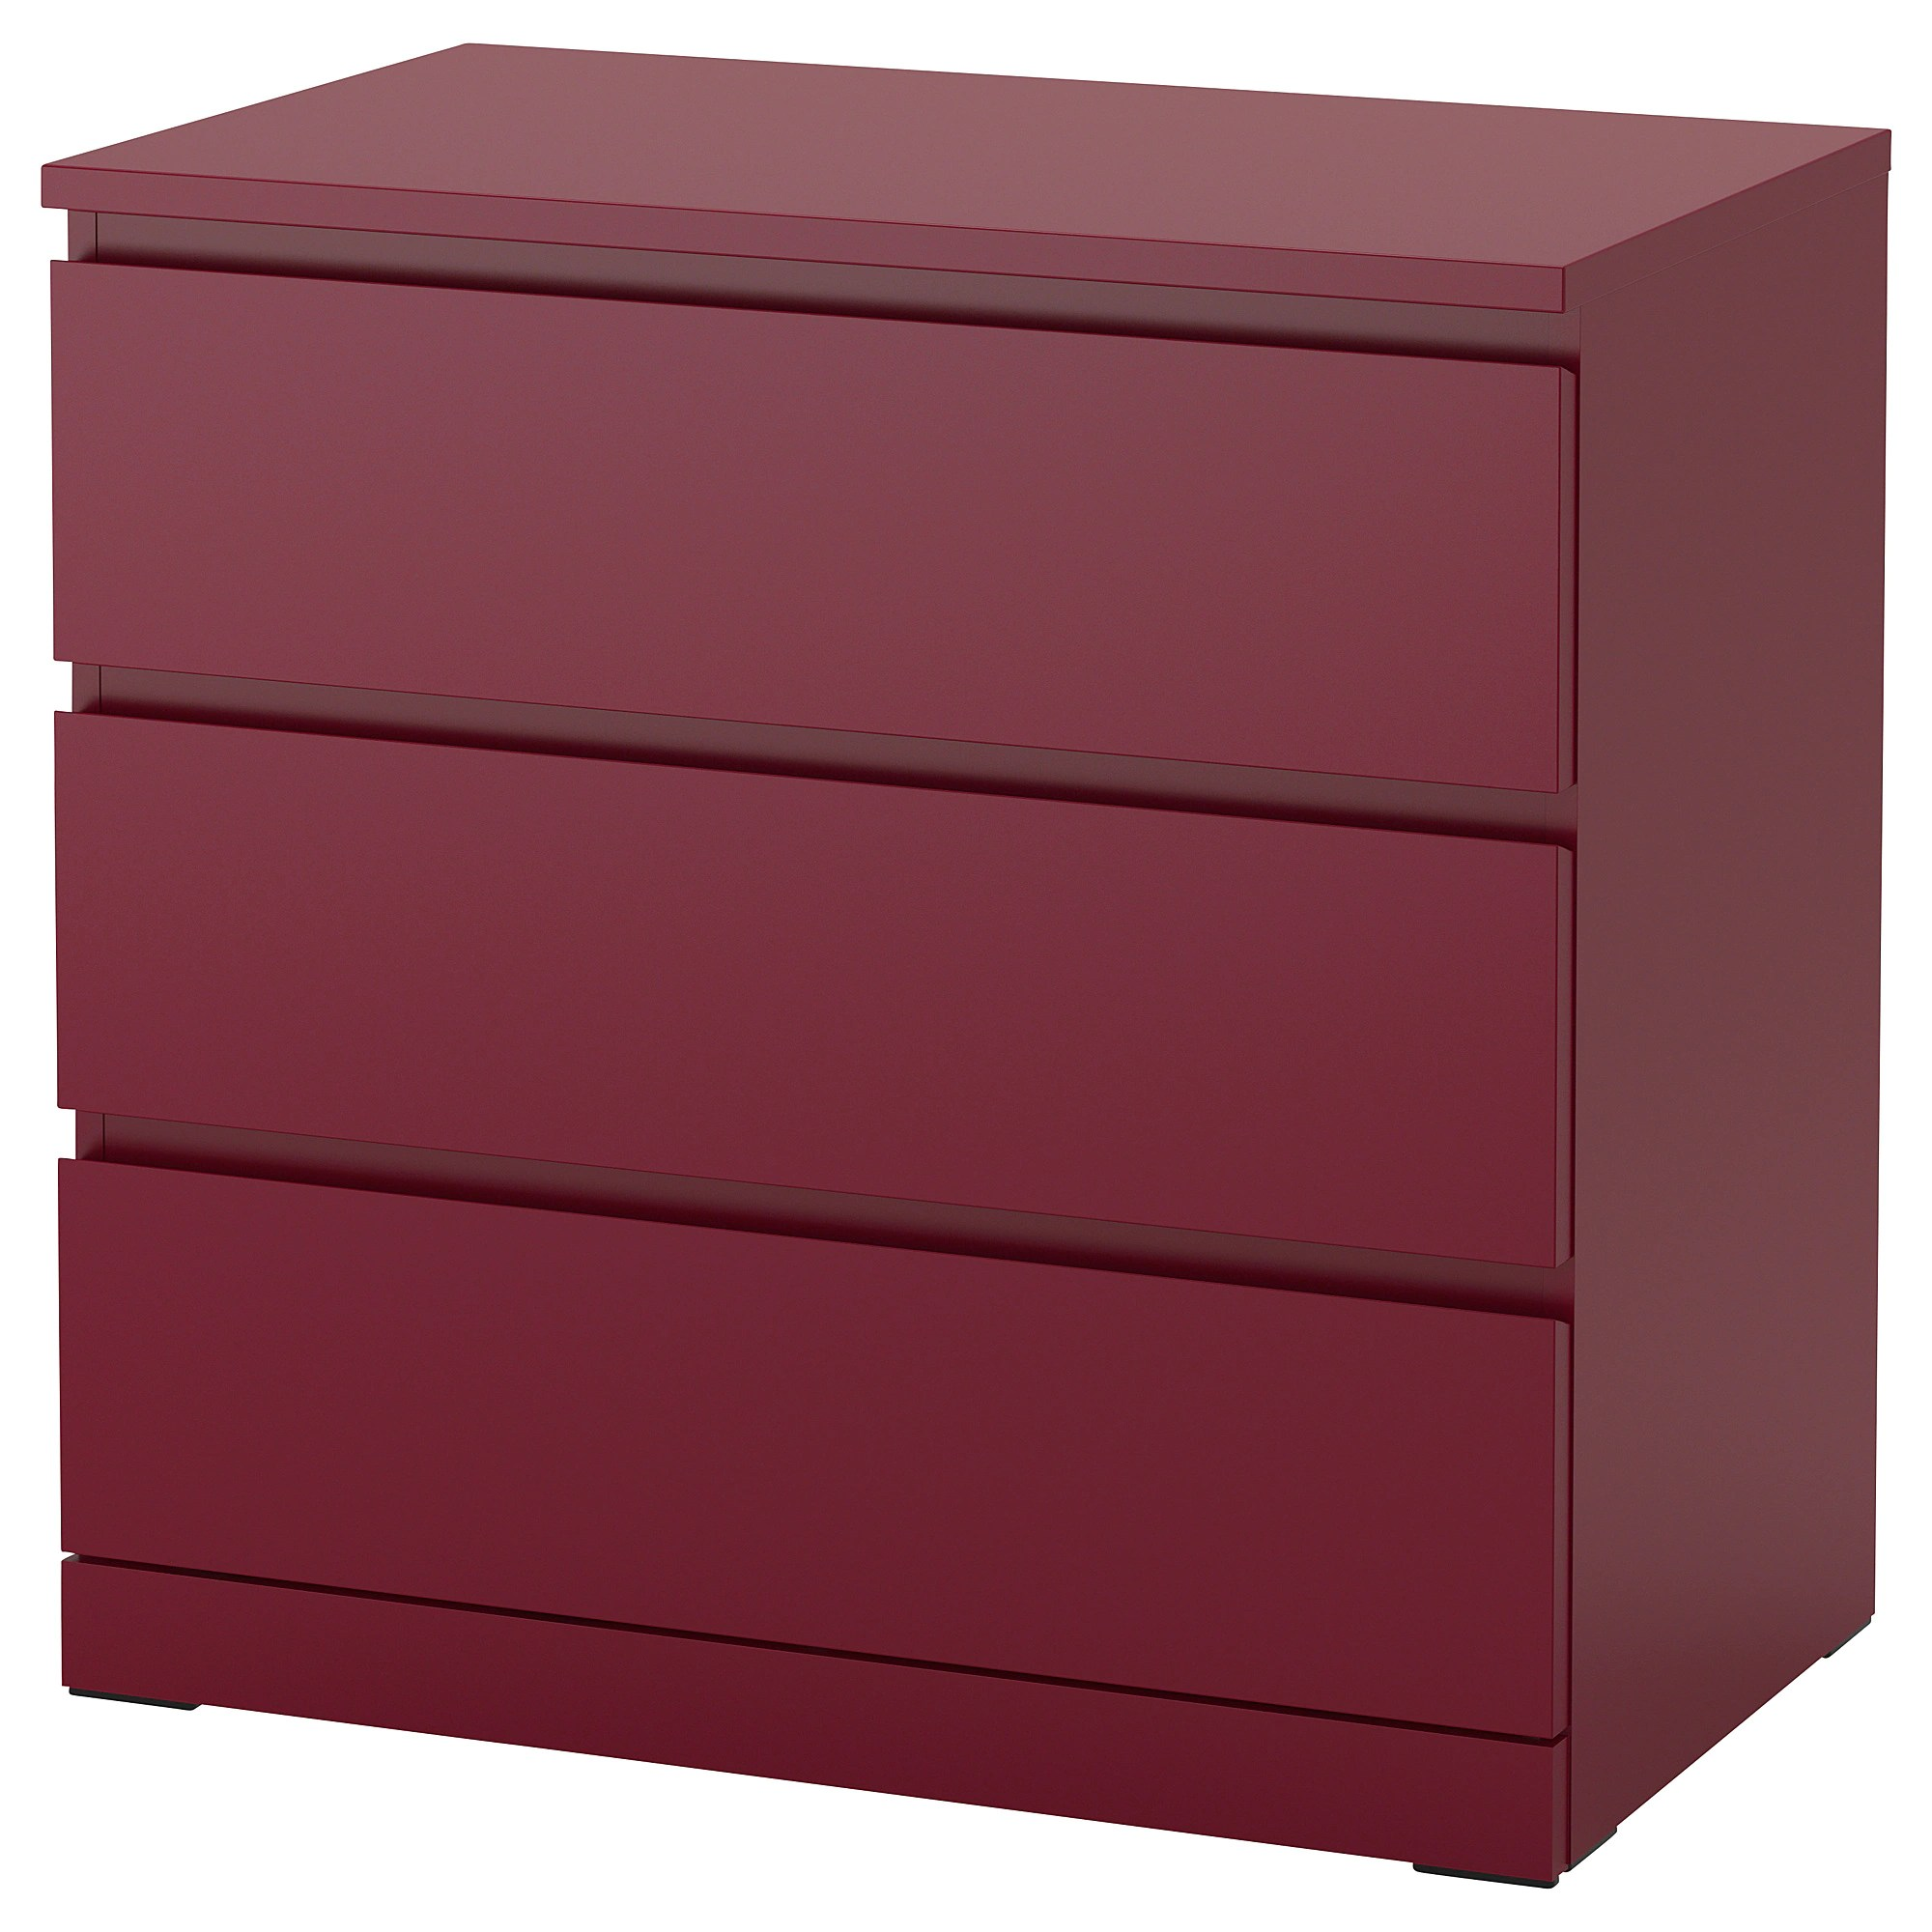 Ikea Malm Kommode Youtube Malm 3 Drawer Chest Dark Red